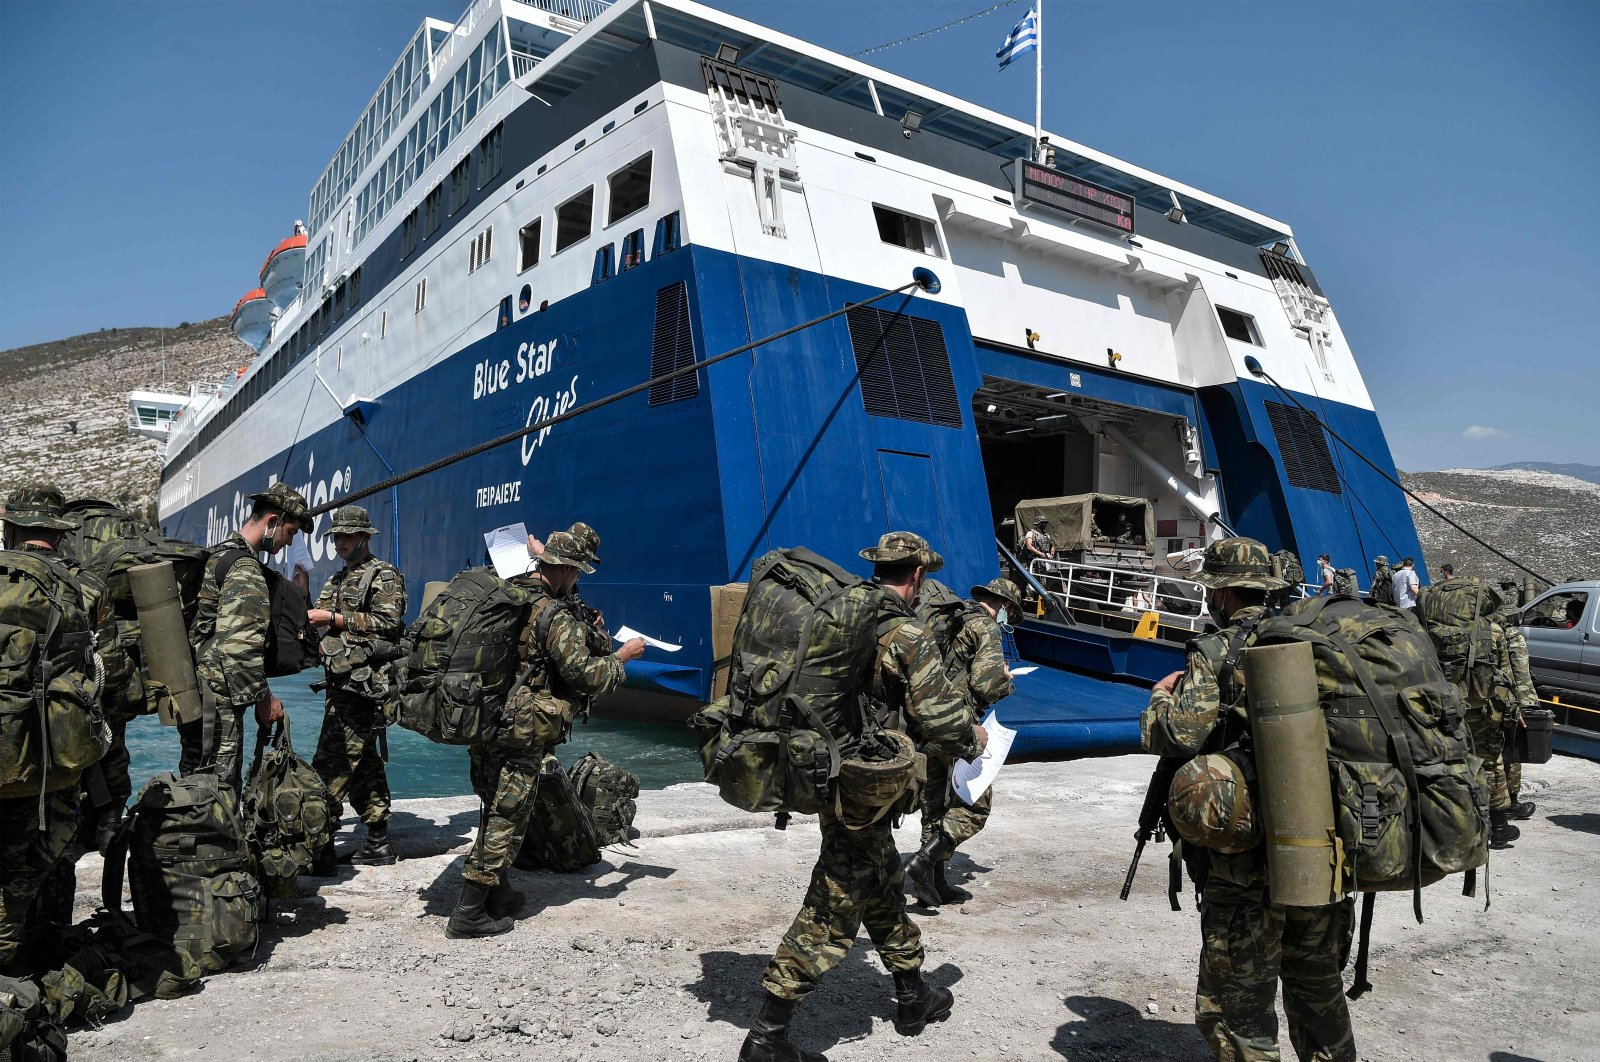 Greek soldiers prepare to board a ferry at the port of the tiny Greek island of Kastellorizo, officially Megisti, the most southeastern inhabited Greek island in the Dodecanese, situated 2 kilometers off the southern coast of Turkey. (AFP Photo)